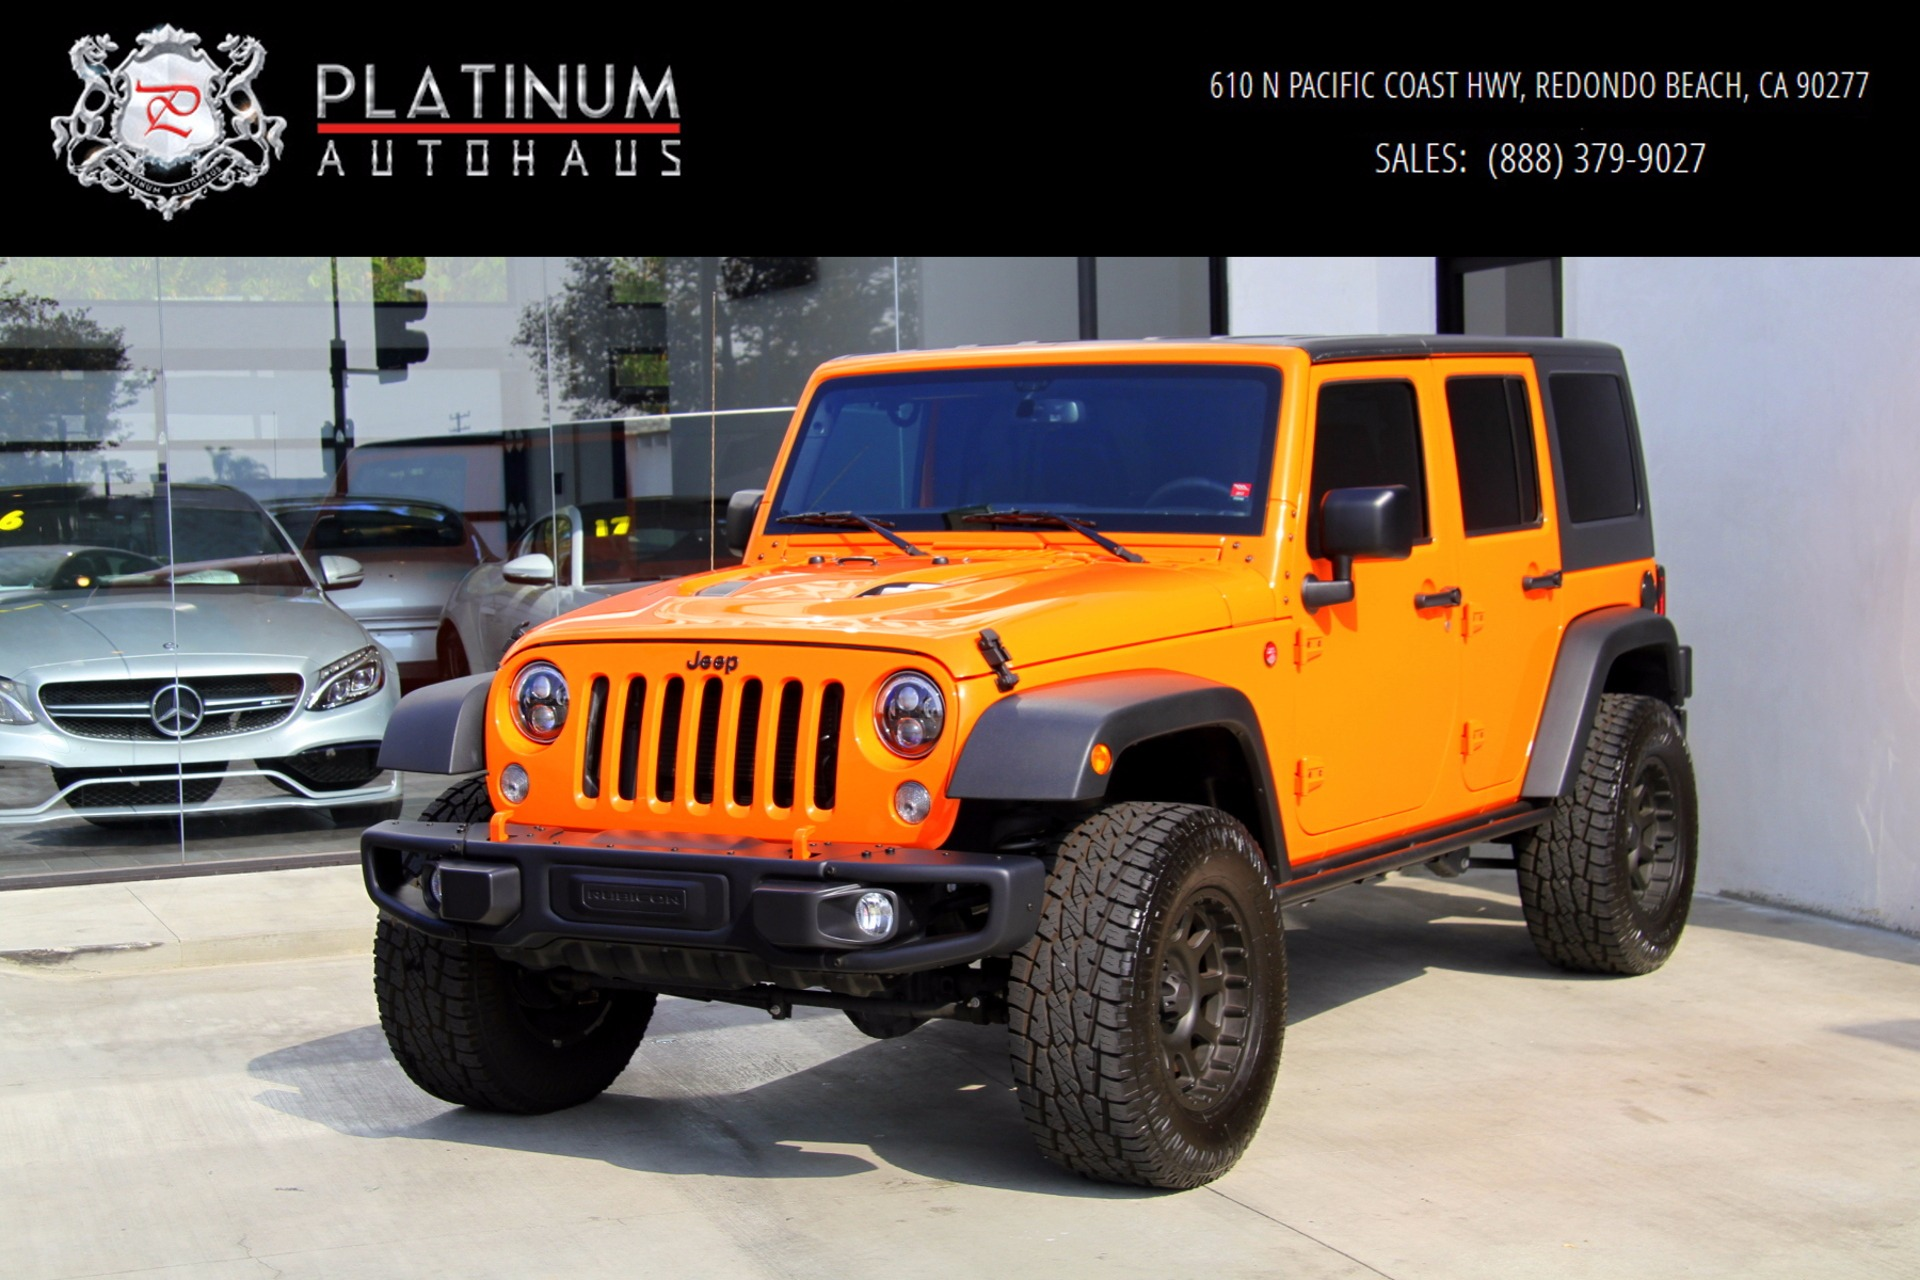 2016 jeep wrangler unlimited rubicon 4x4 stock # 180285 for